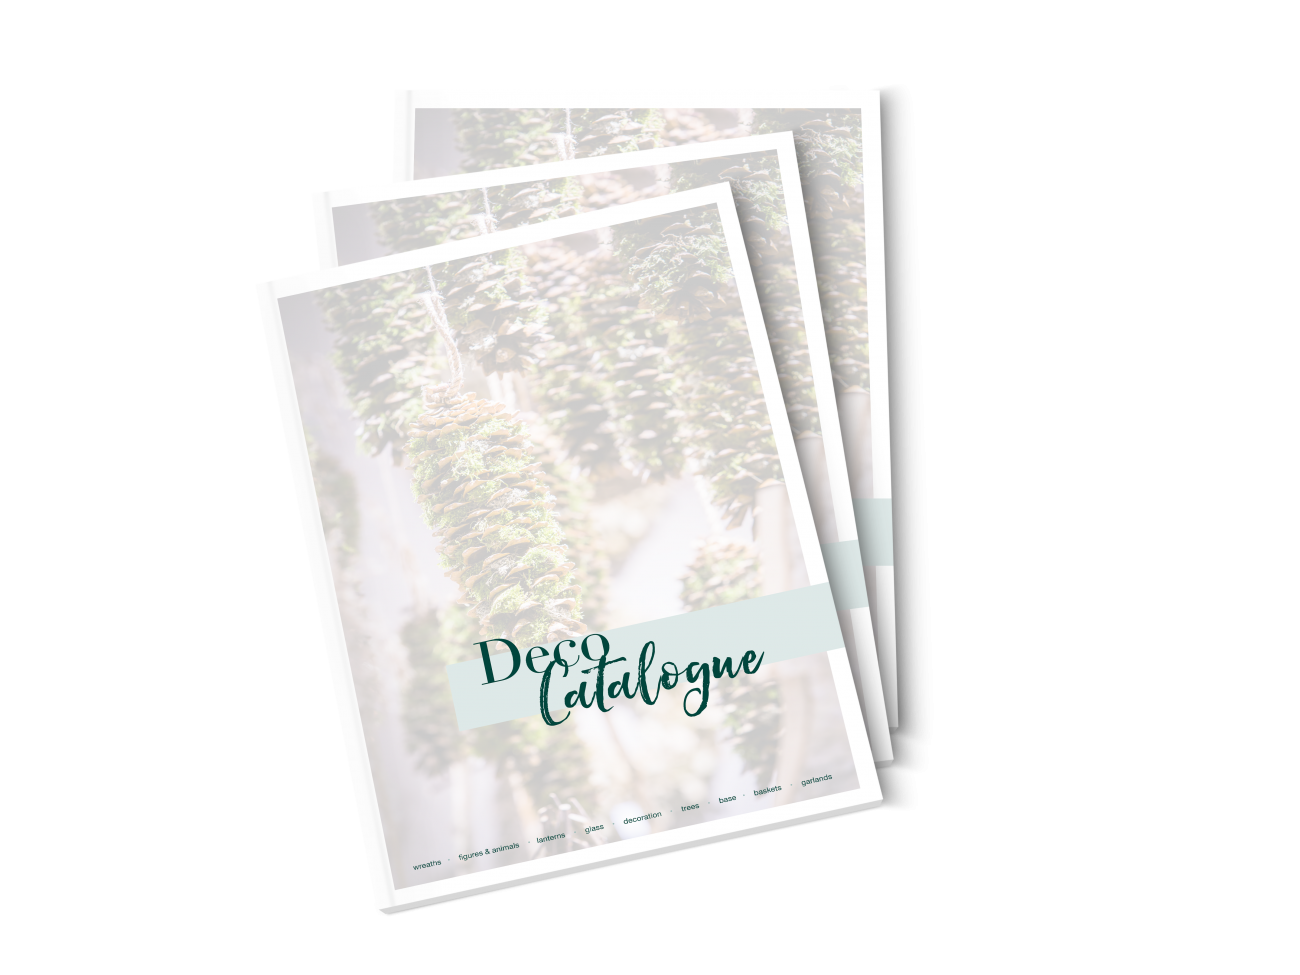 Deco Catalogue Cover mockup